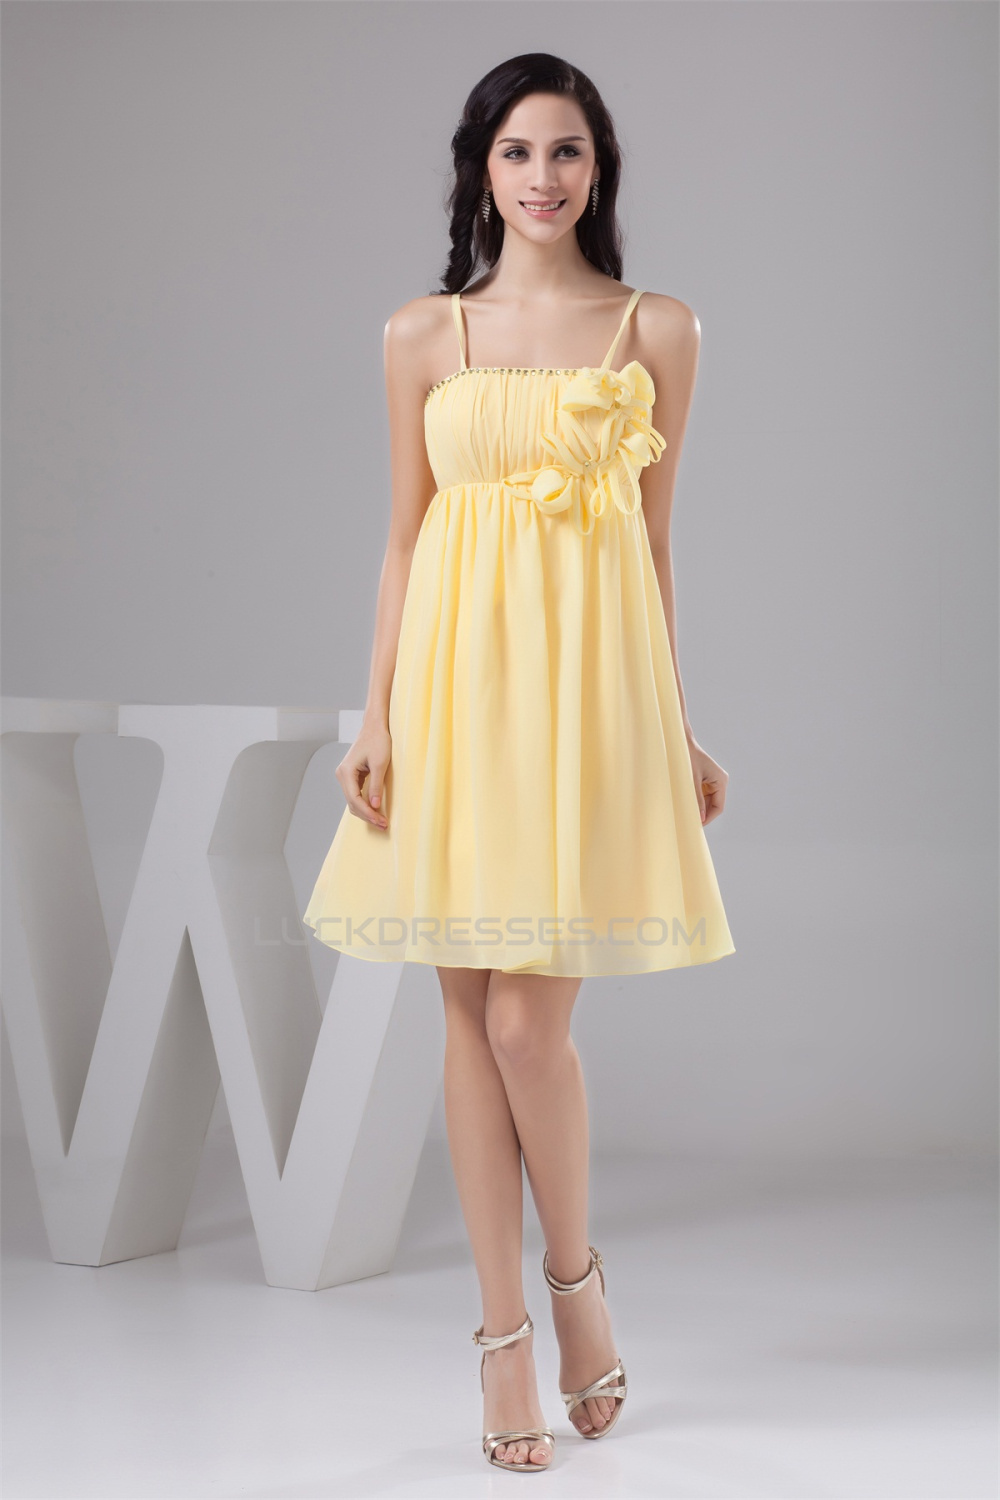 5e9c56f5b43 A-Line Knee-Length Sequins Chiffon Sleeveless Short Yellow Bridesmaid  Dresses Maternity Dresses 02010415